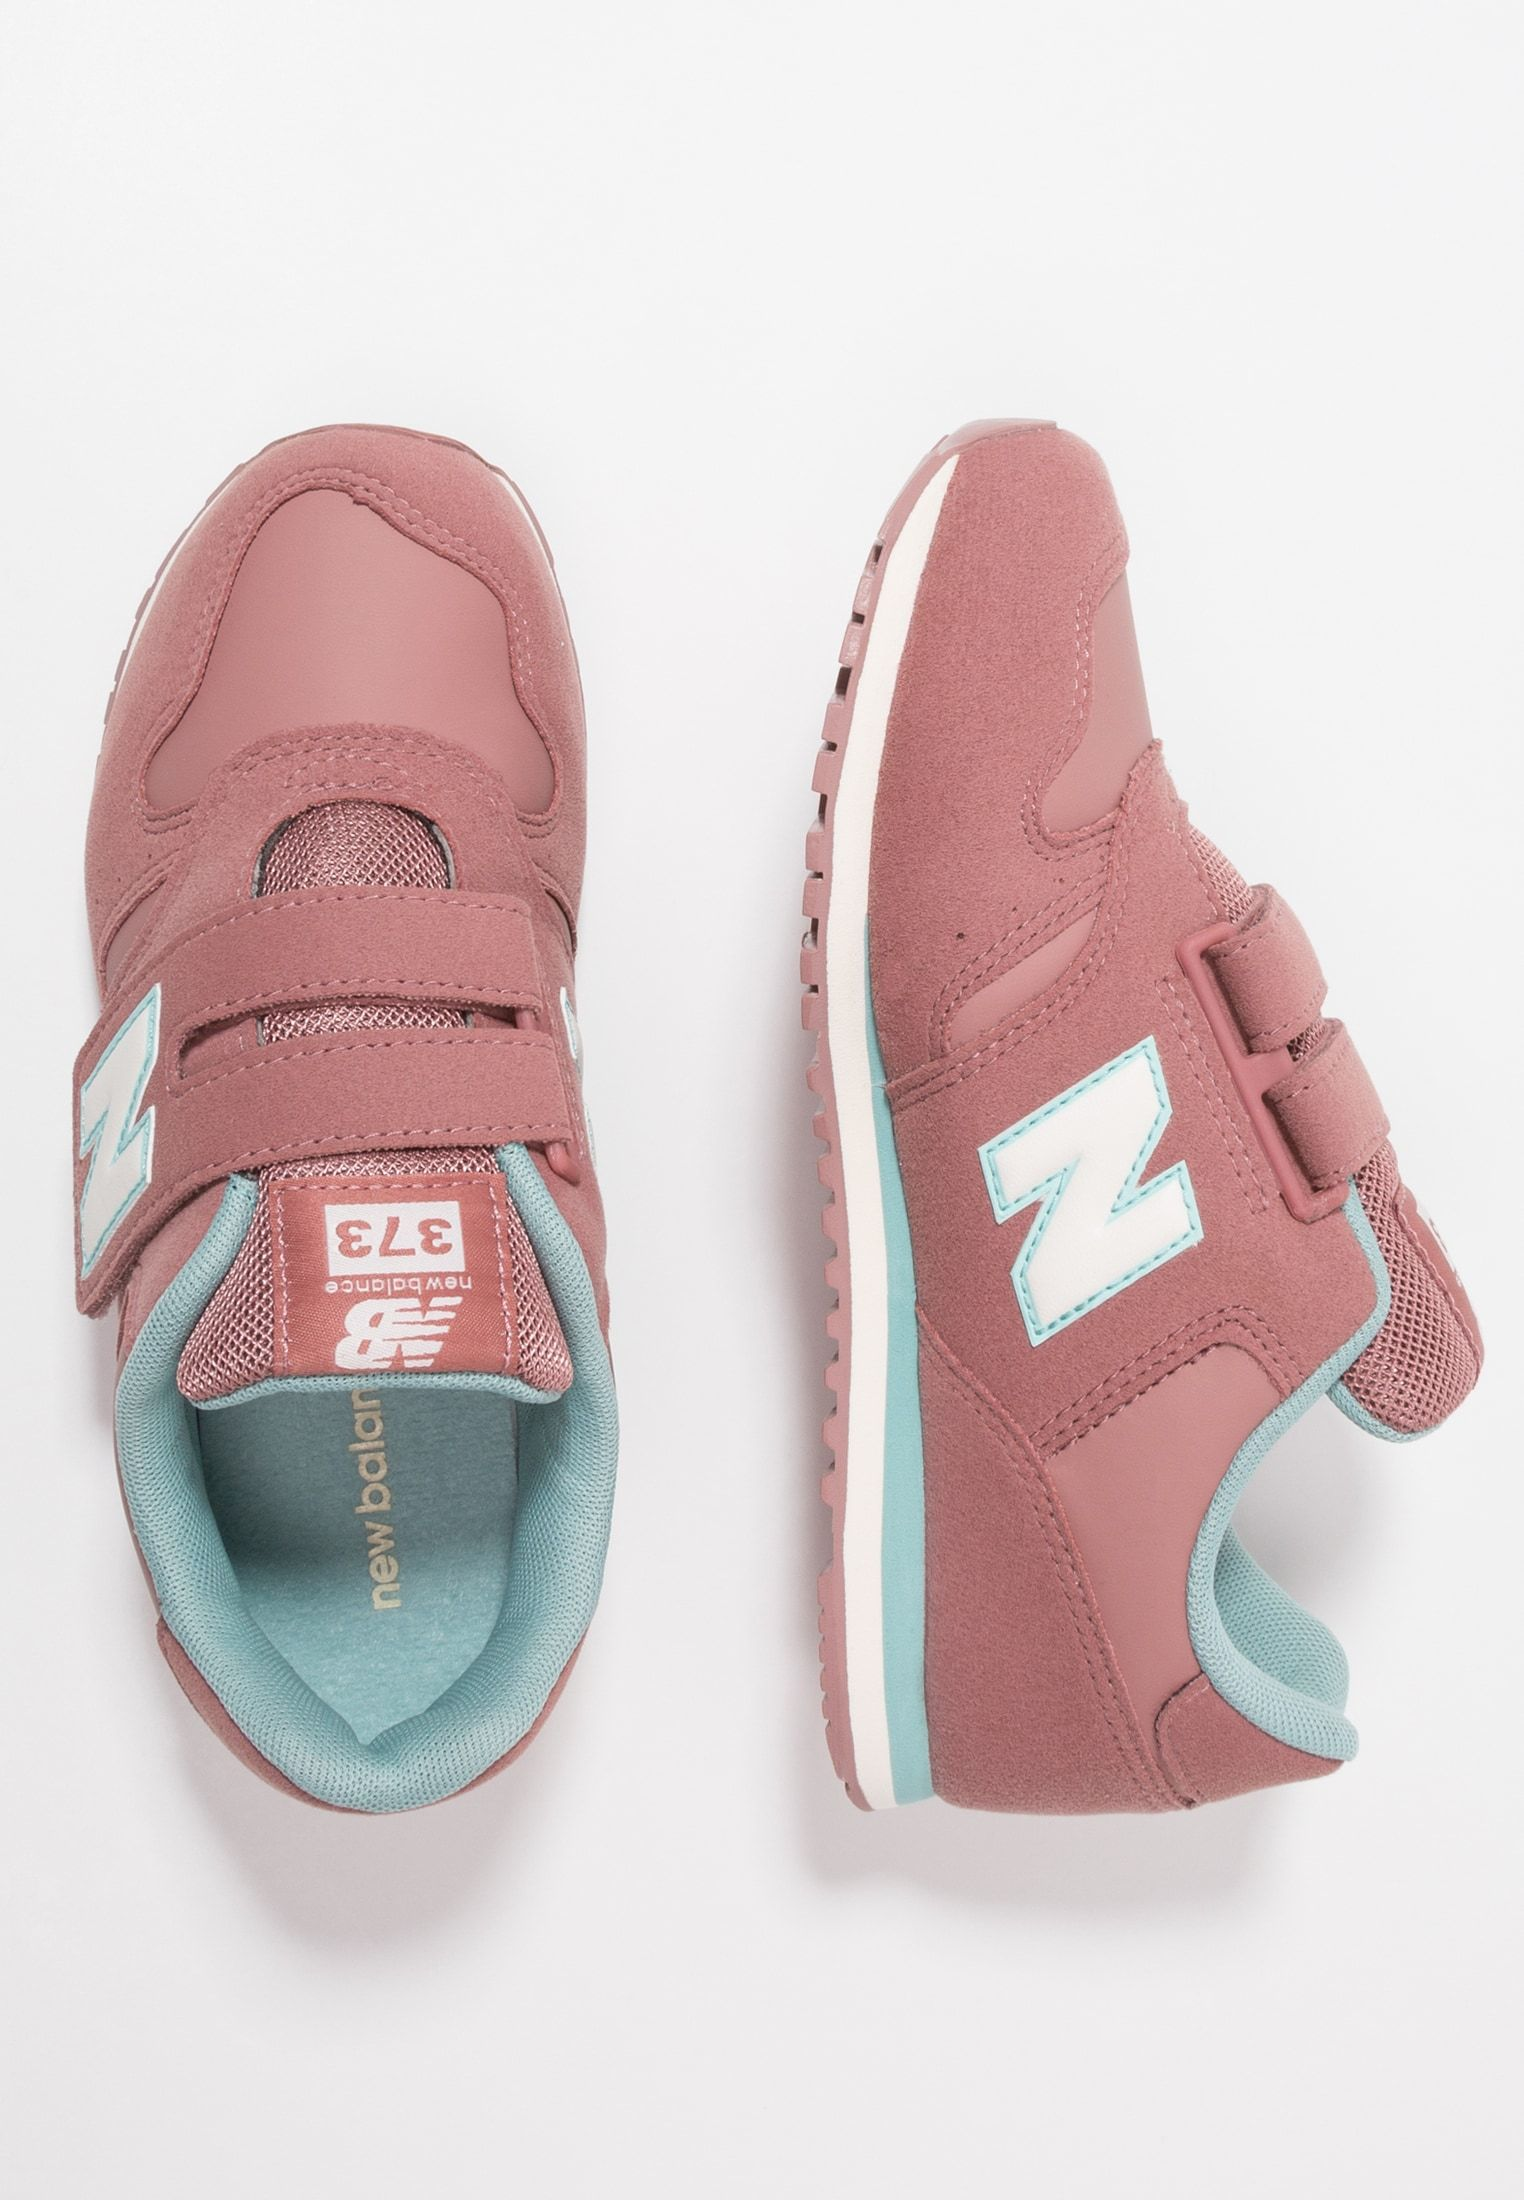 on sale 3846f aac35 KV373NTY - Sneakersy niskie - pink @ Zalando.pl 🛒 | Kids ...